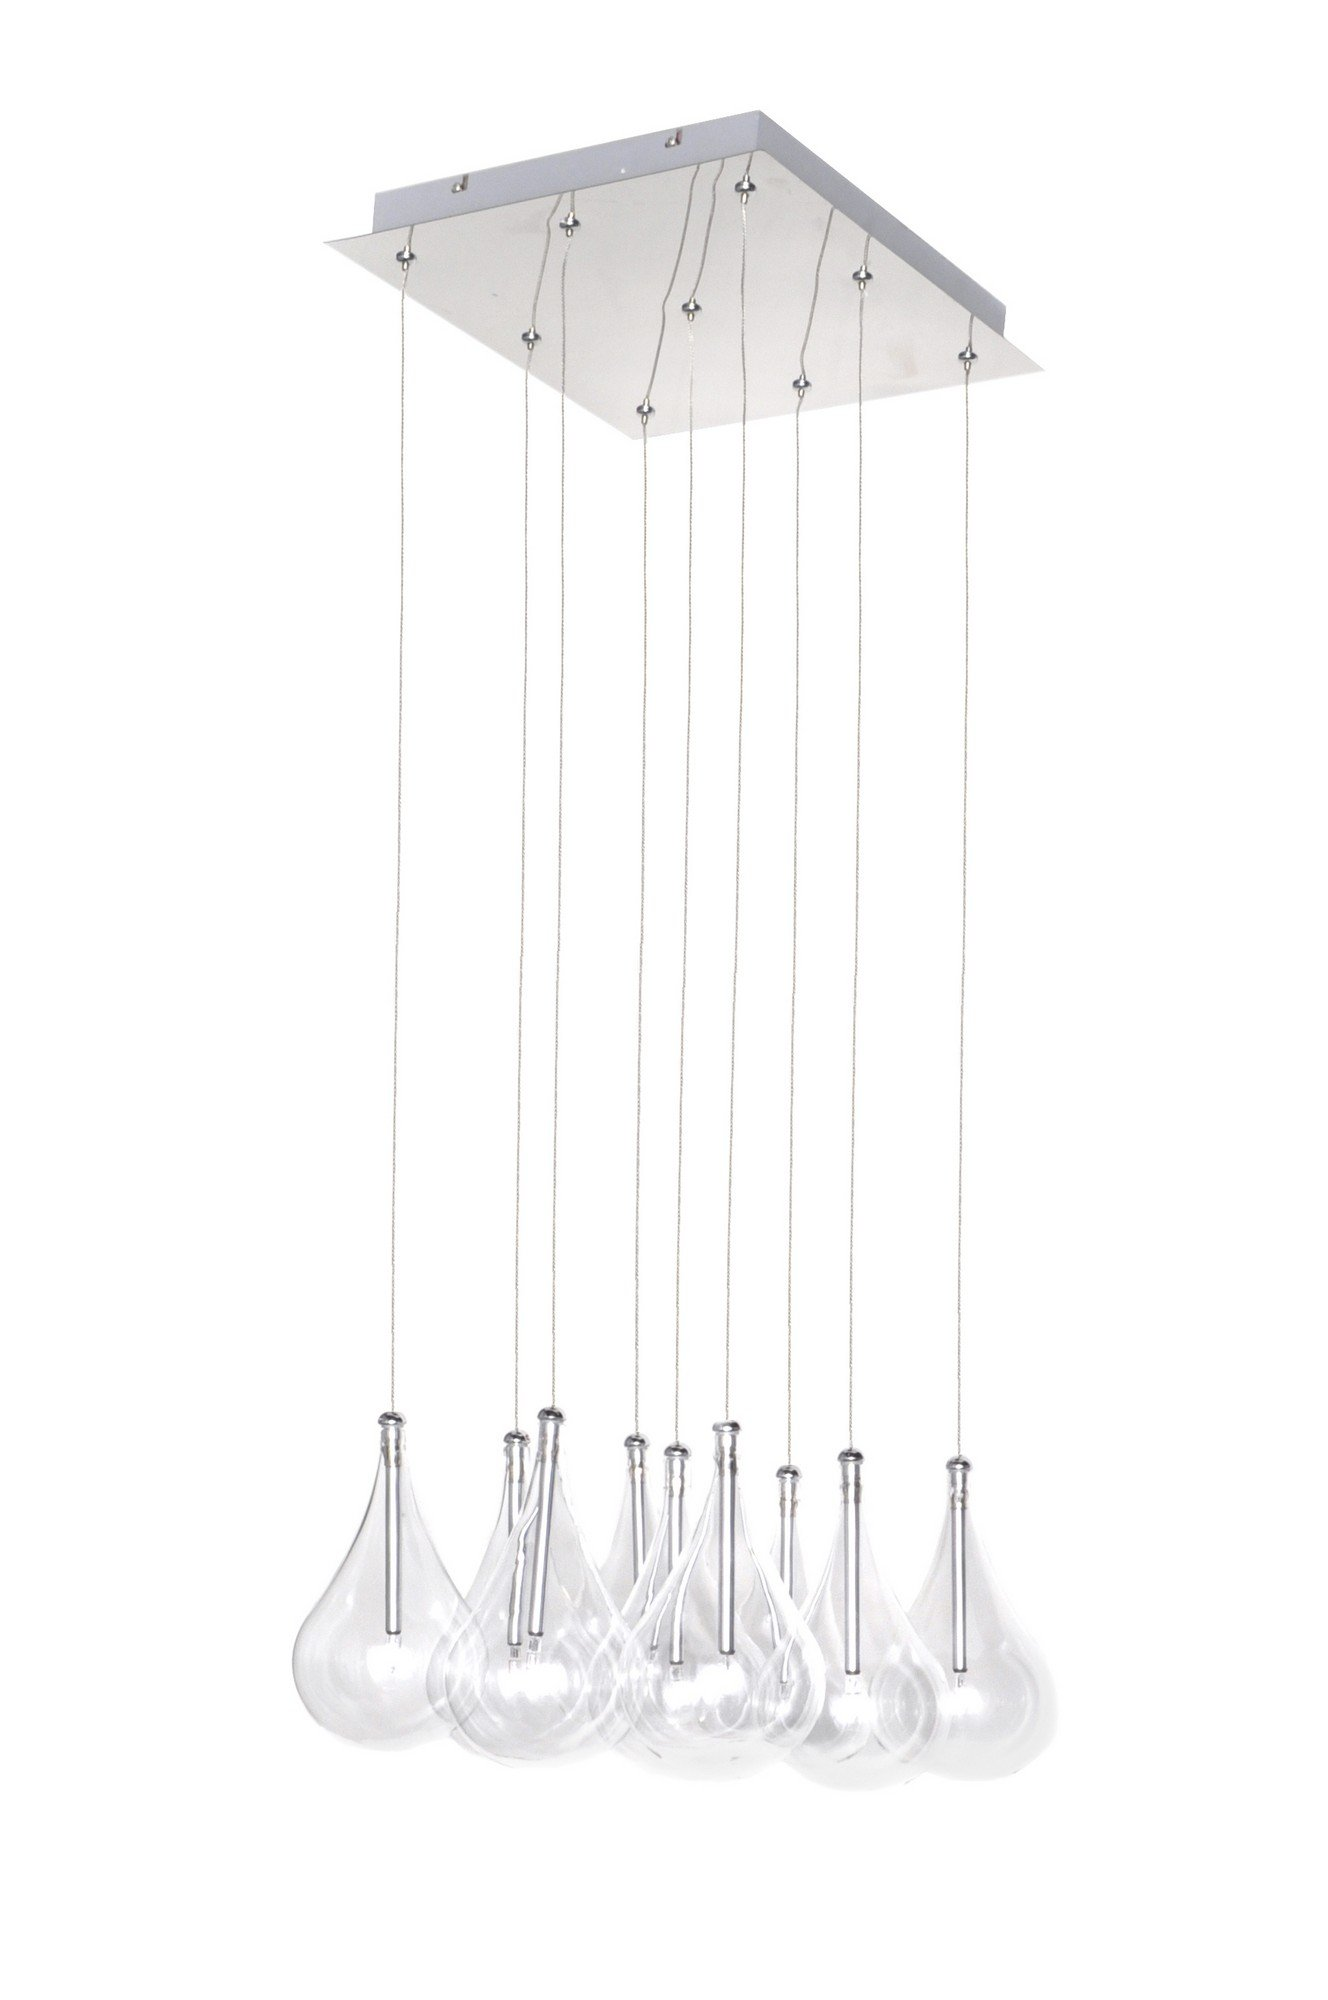 ET2 E20116-18 Larmes 9-Light Multi-Light Pendant, Polished Chrome Finish, Clear Glass, 12V G4 Xenon Bulb, 50W Max., Dry Safety Rated, Shade Material, 3450 Rated Lumens